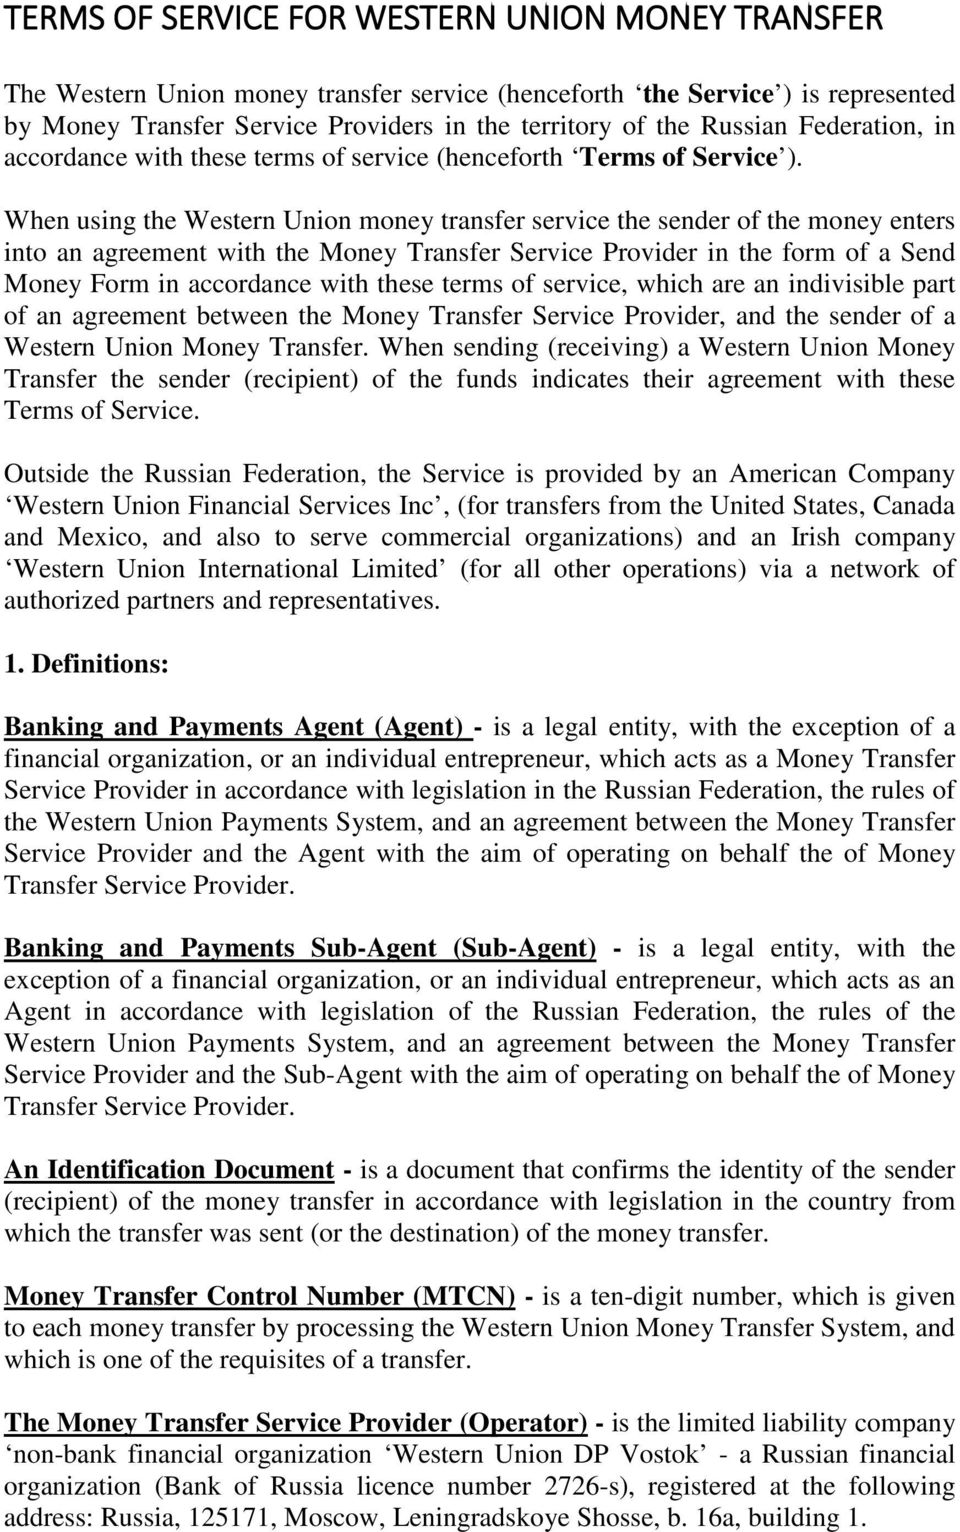 TERMS OF SERVICE FOR WESTERN UNION MONEY TRANSFER - PDF